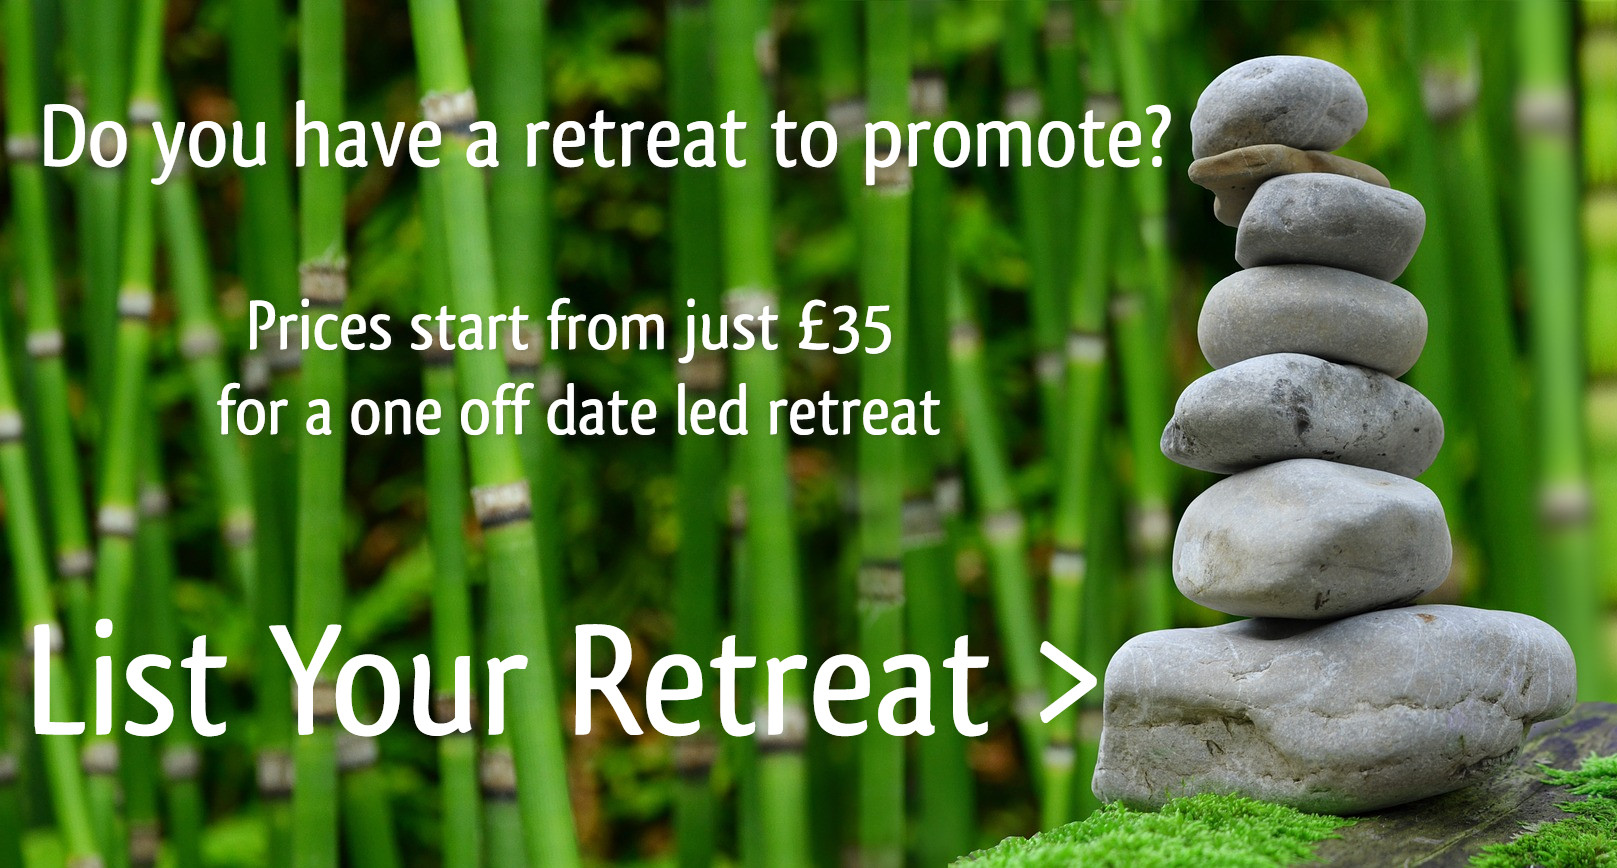 List Your Retreat